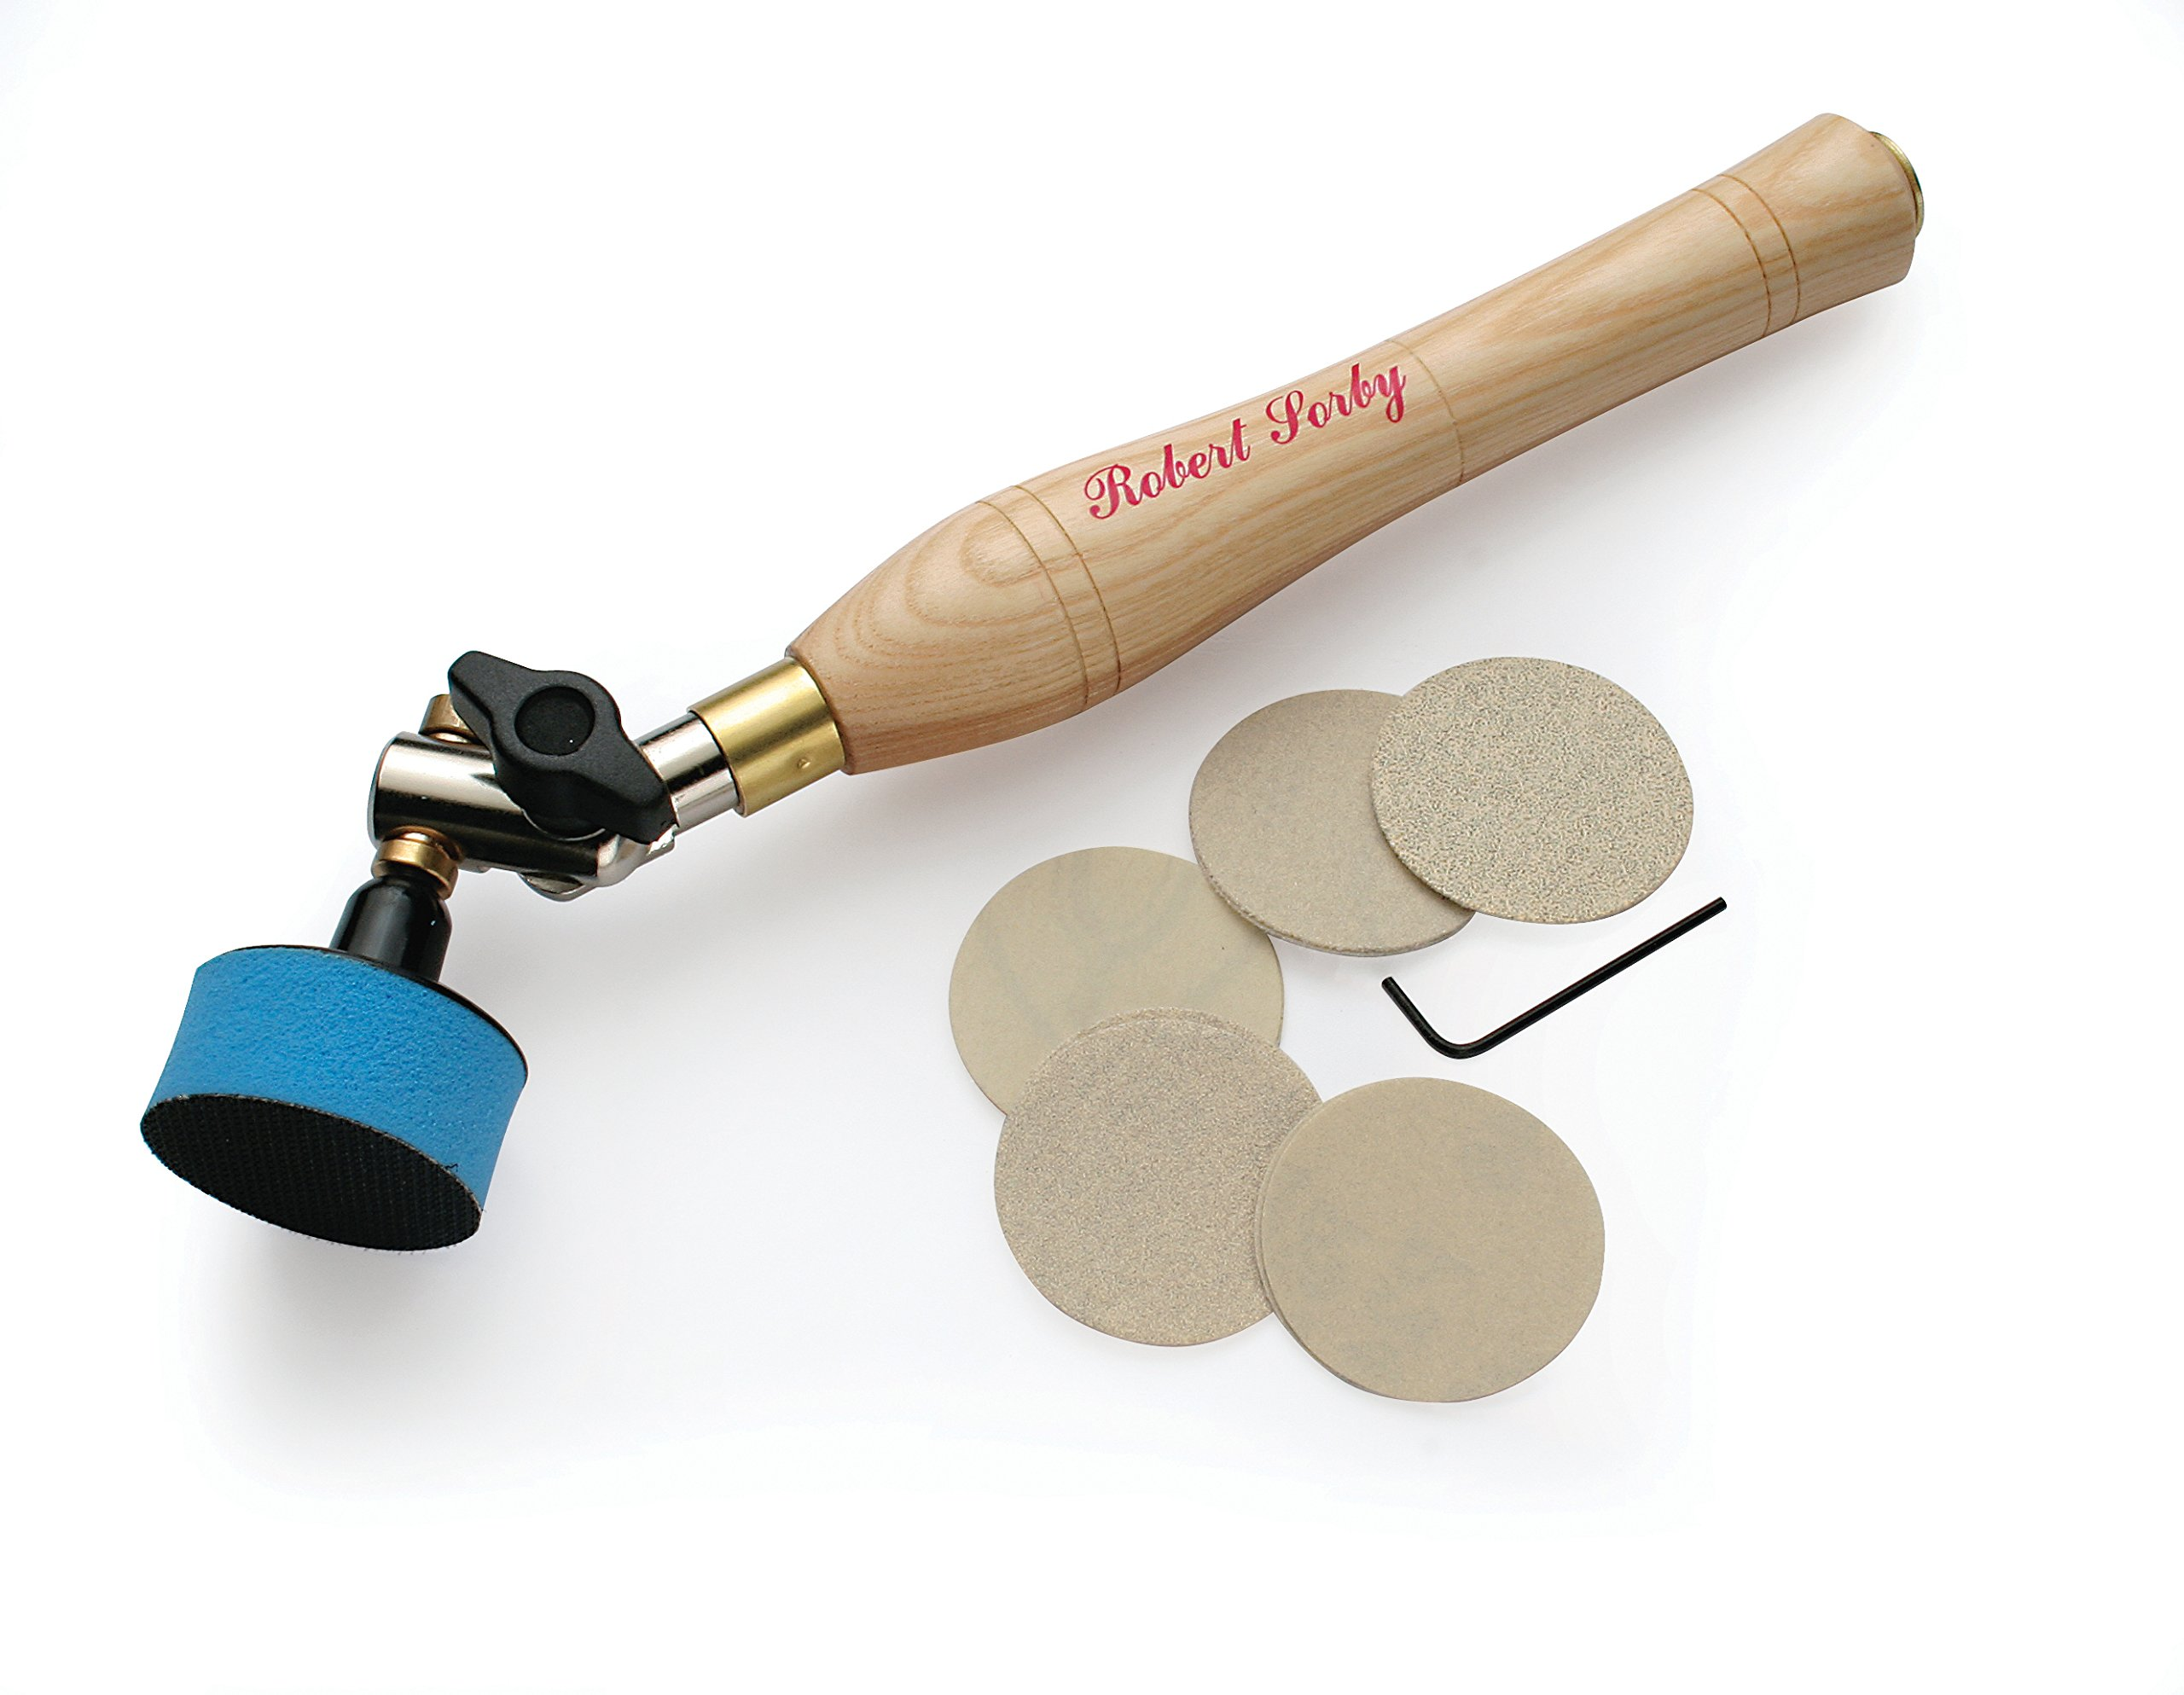 """Robert Sorby H9086 Sandmaster Bowl Sanding Tool with 2"""" Diameter Pad 10 1/2 """" Overall Length 410 by Robert Sorby"""